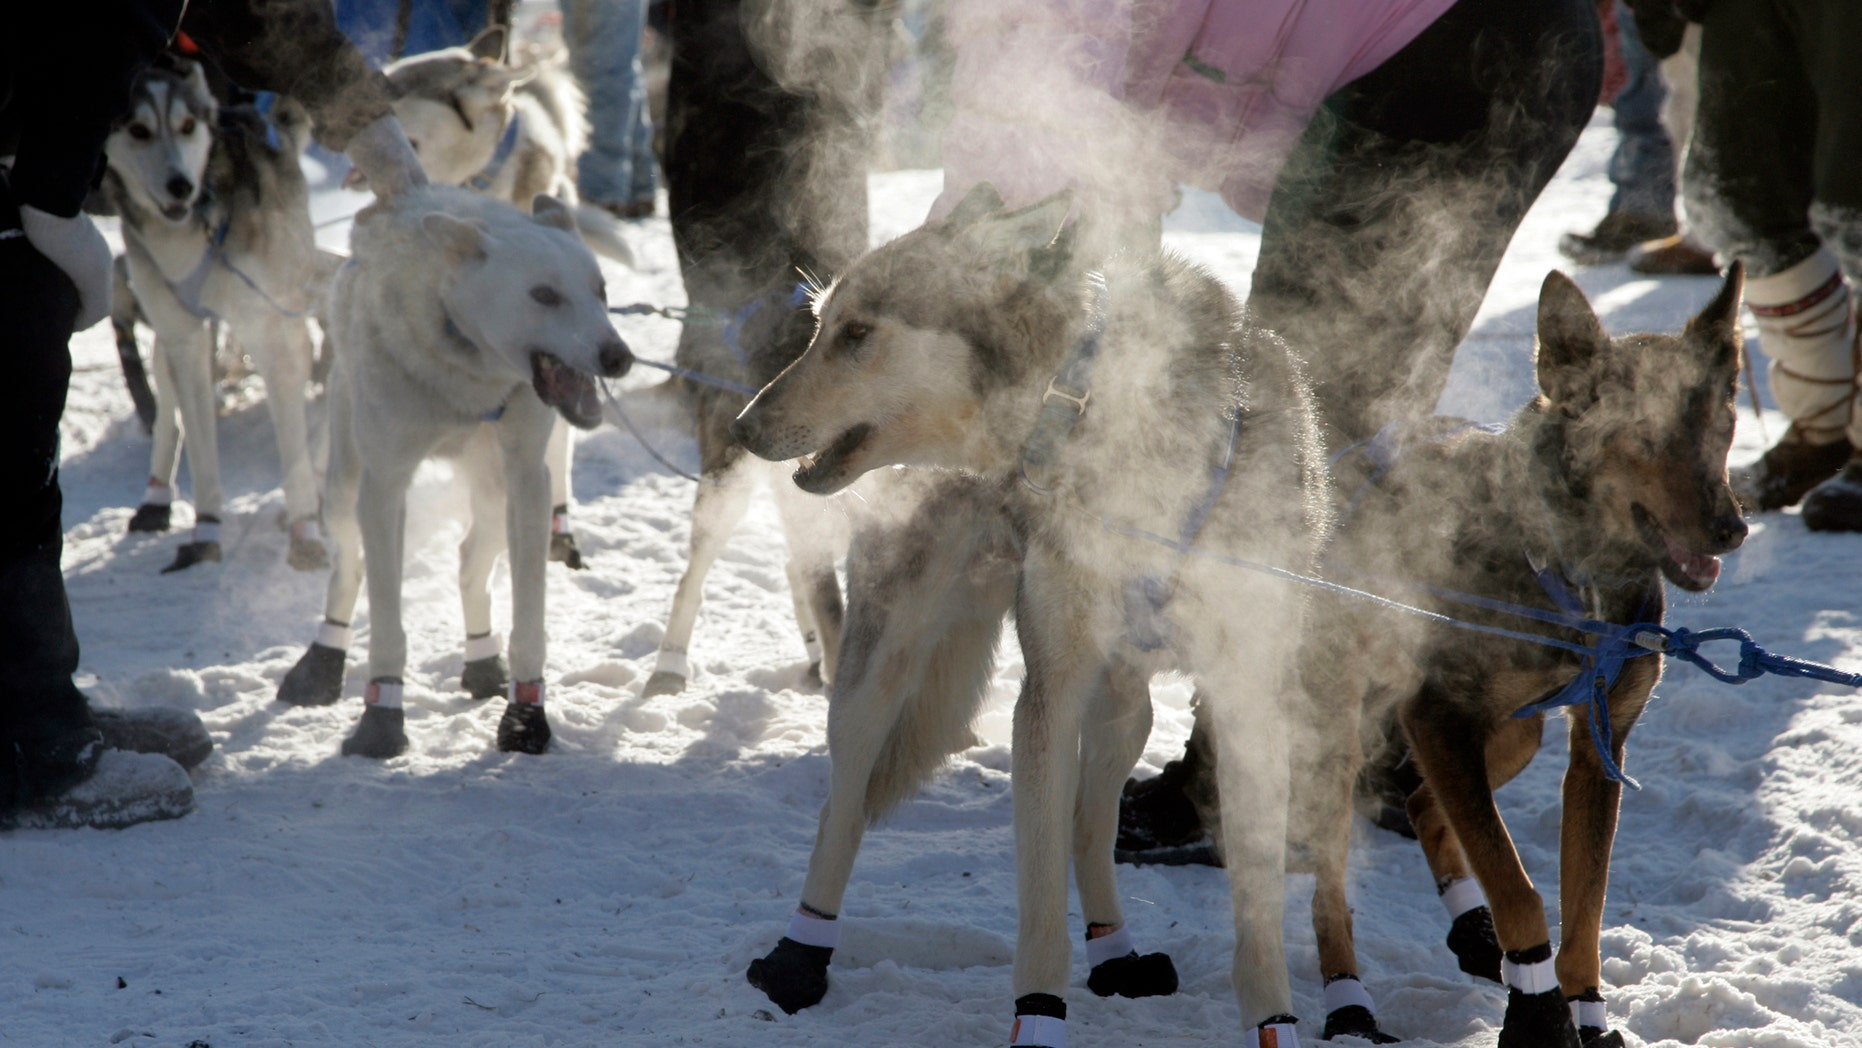 The mushing team of Joanna Oberg, of Ignace, Ontario, Canada, fills the starting line area with steam from their breath, as they prepare to depart from the starting line of the John Beargrease Sled Dog Marathon, in Duluth, Minn., on Sunday, Jan. 30, 2011. (AP)